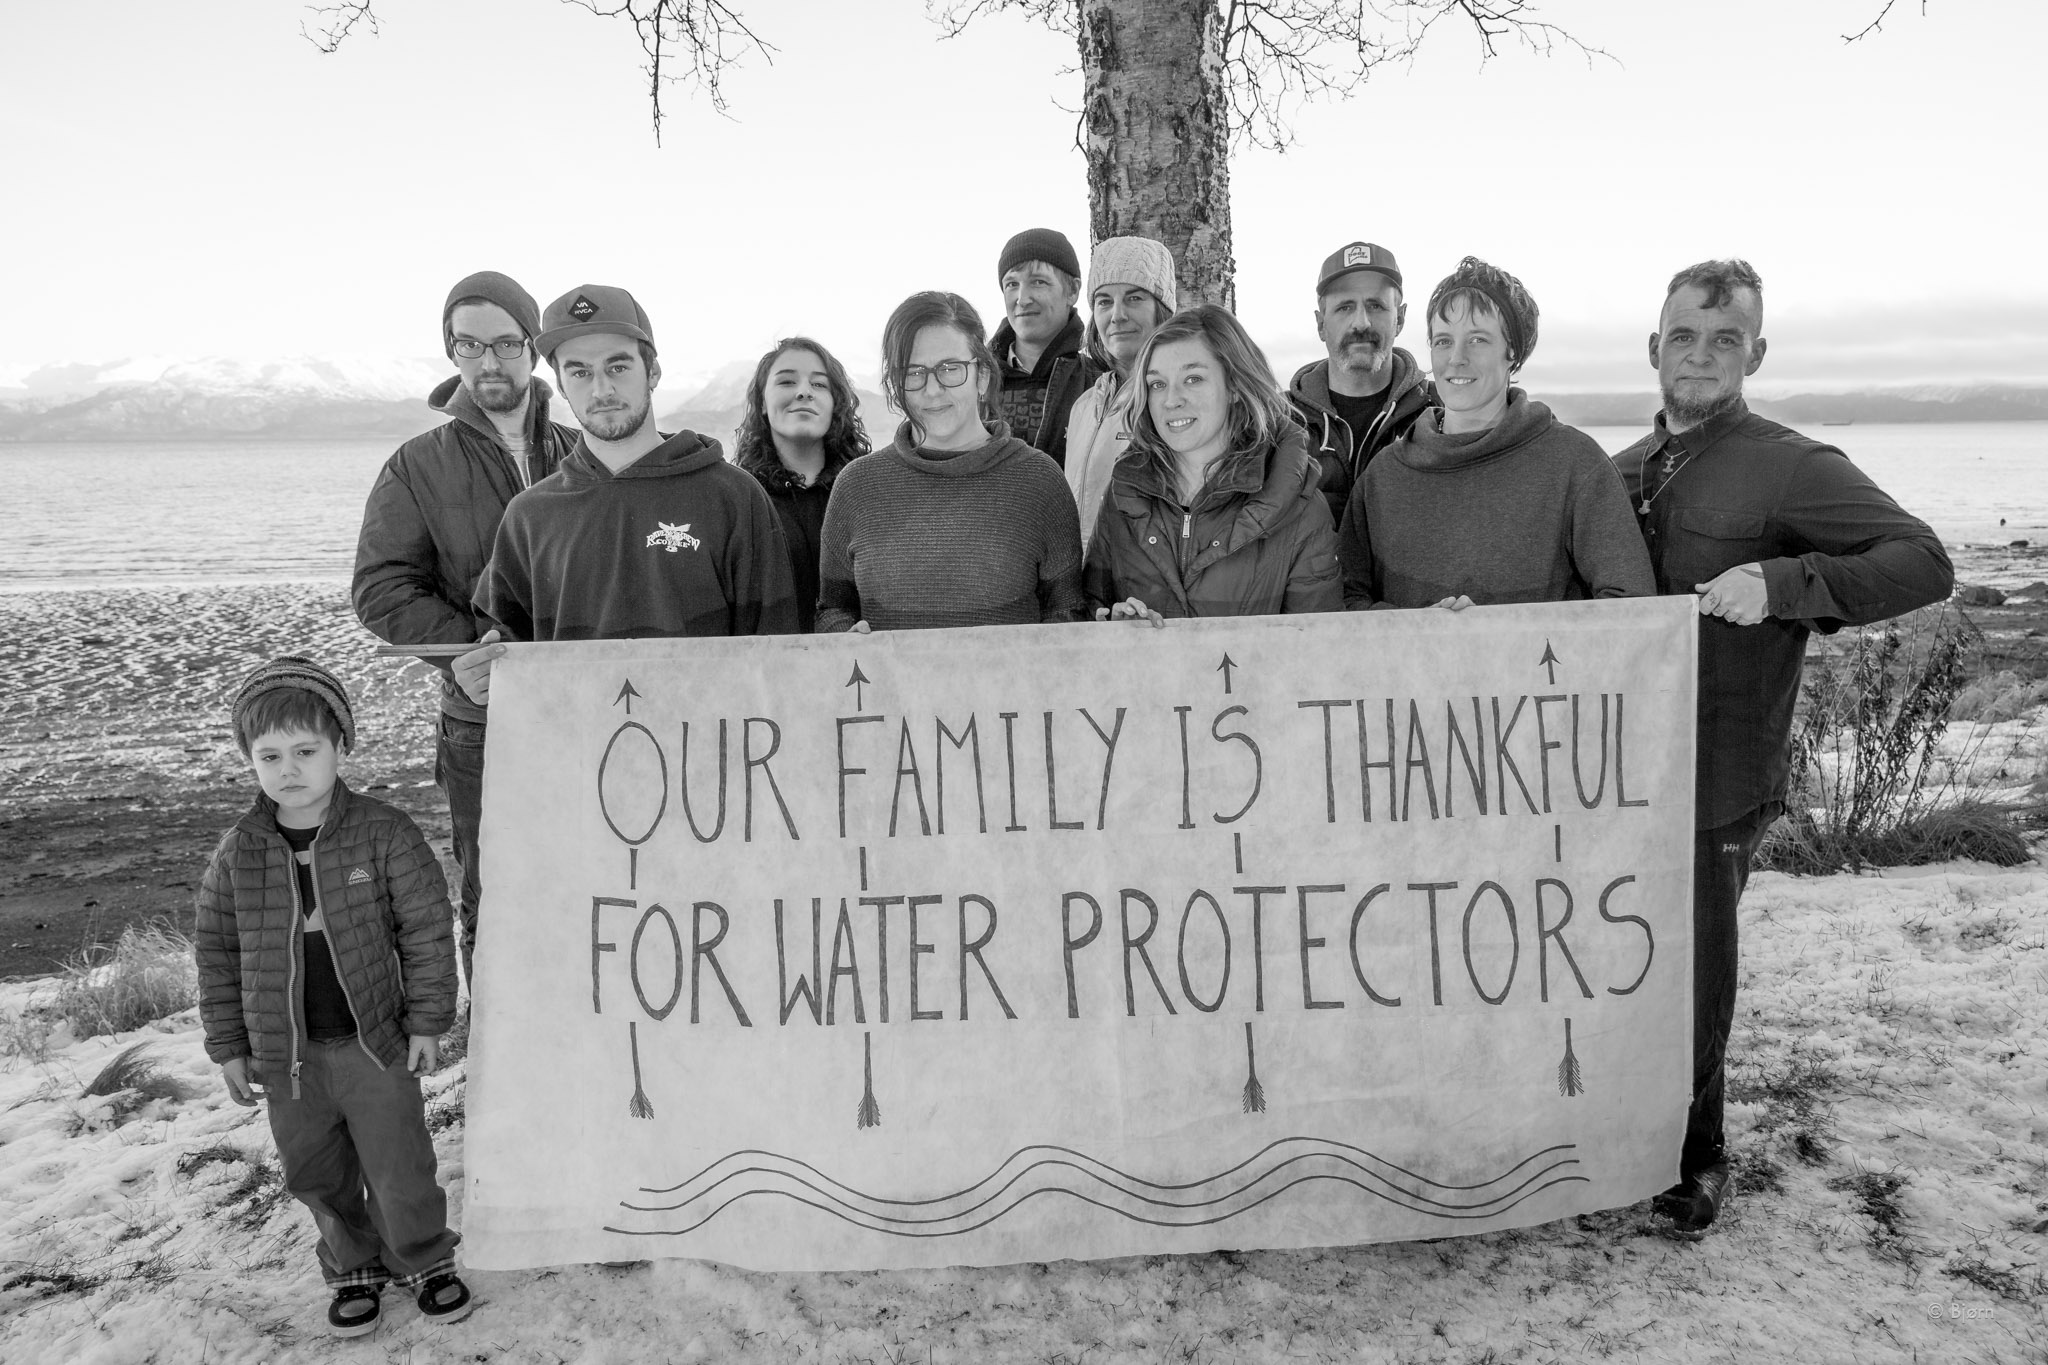 Our Family Is Thankful For Water Protectors